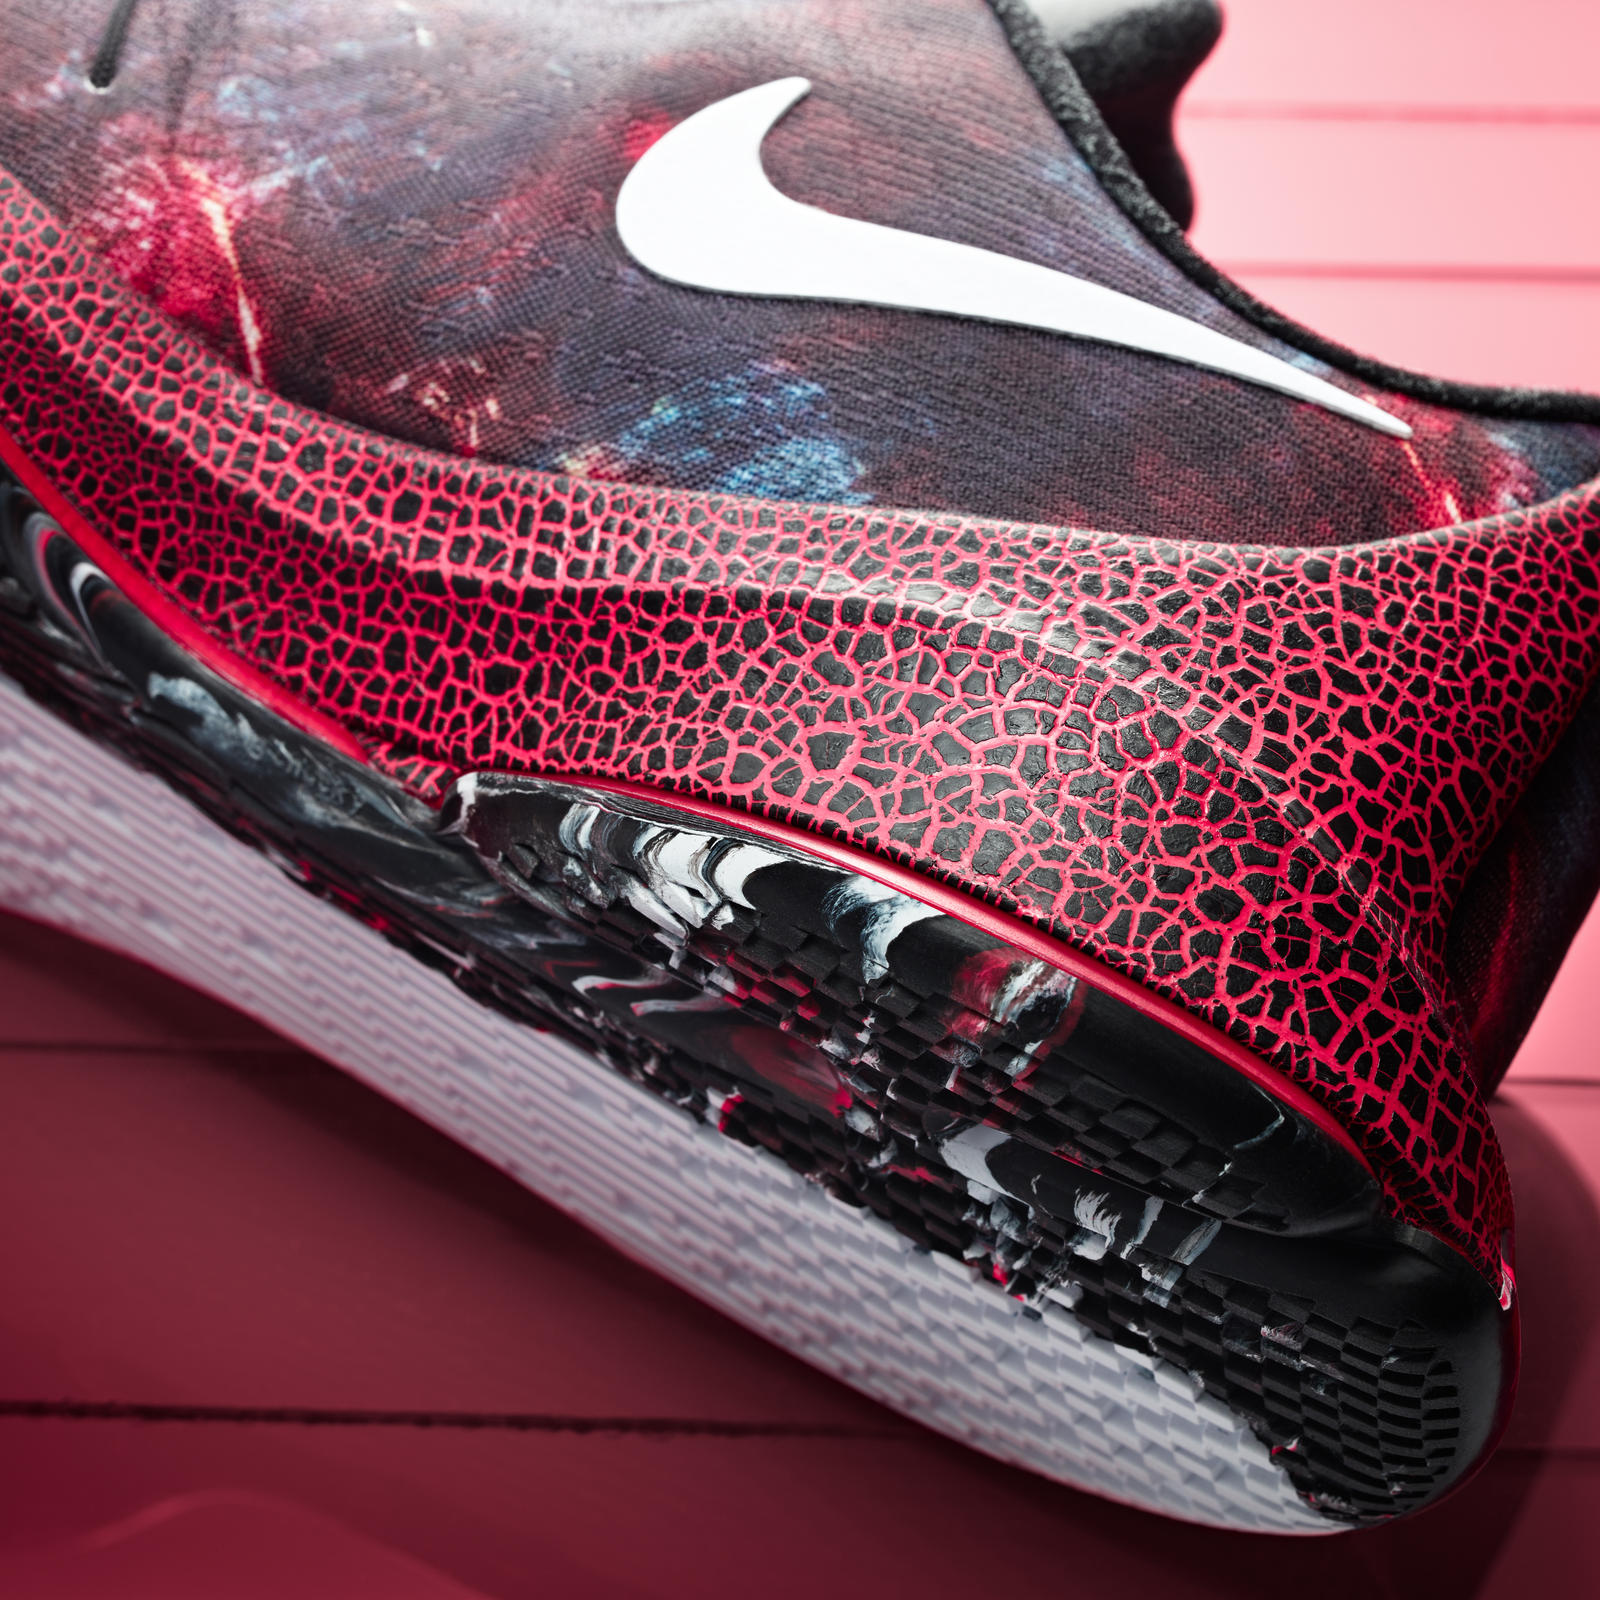 newest 0e4a9 459c0 germany nike kd 8 christmas. color white black bright crimson style code  822948 106. release date december 26th 2015. price 200 09466 e74d9  ebay 15  ...